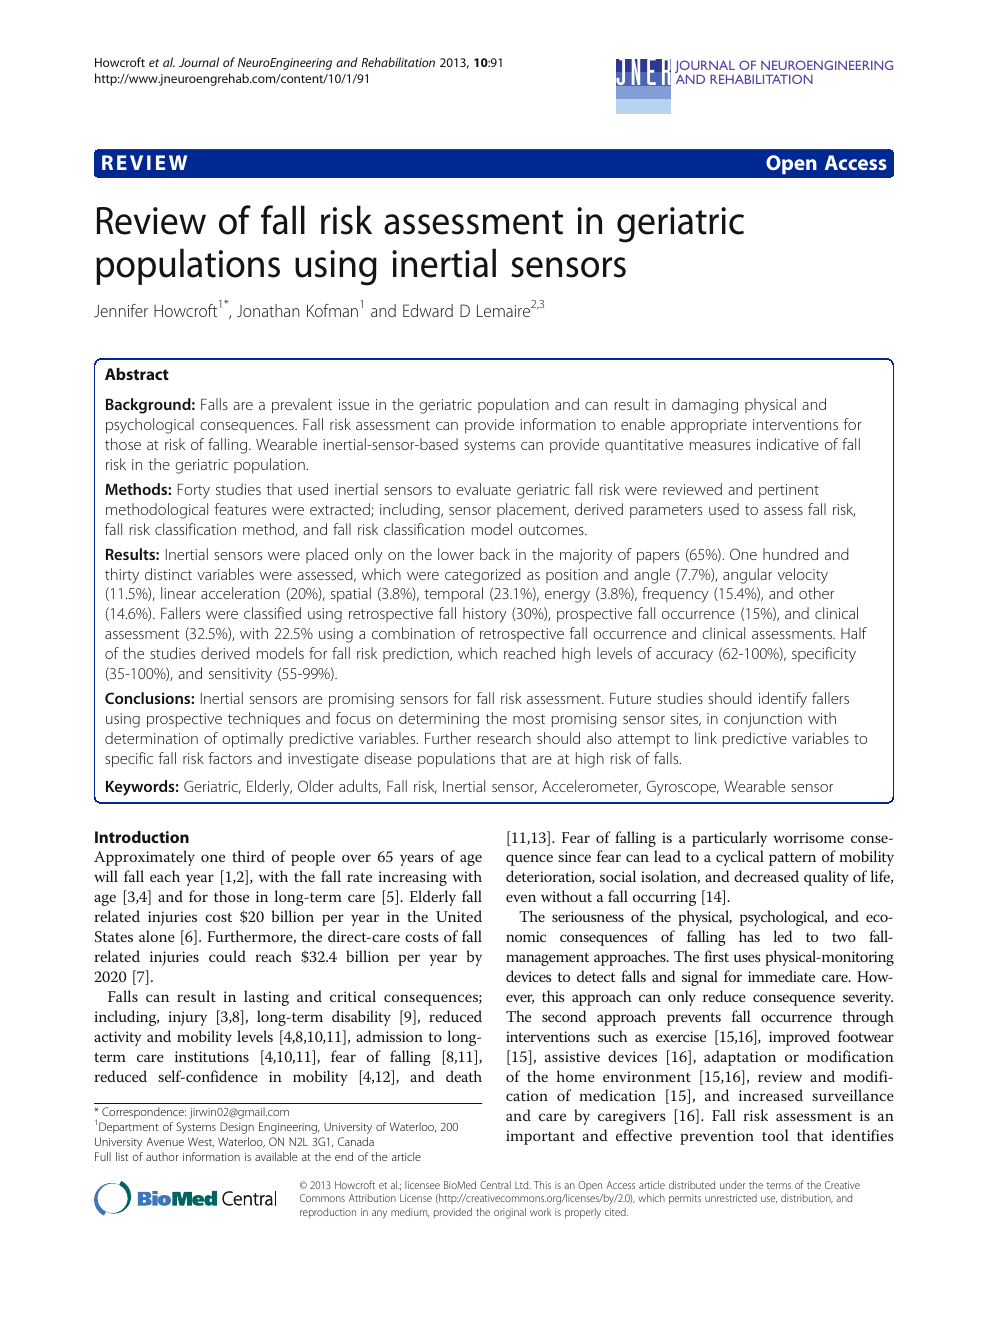 Review Of Fall Risk Assessment In Geriatric Populations Using Inertial Sensors Topic Of Research Paper In Medical Engineering Download Scholarly Article Pdf And Read For Free On Cyberleninka Open Science Hub